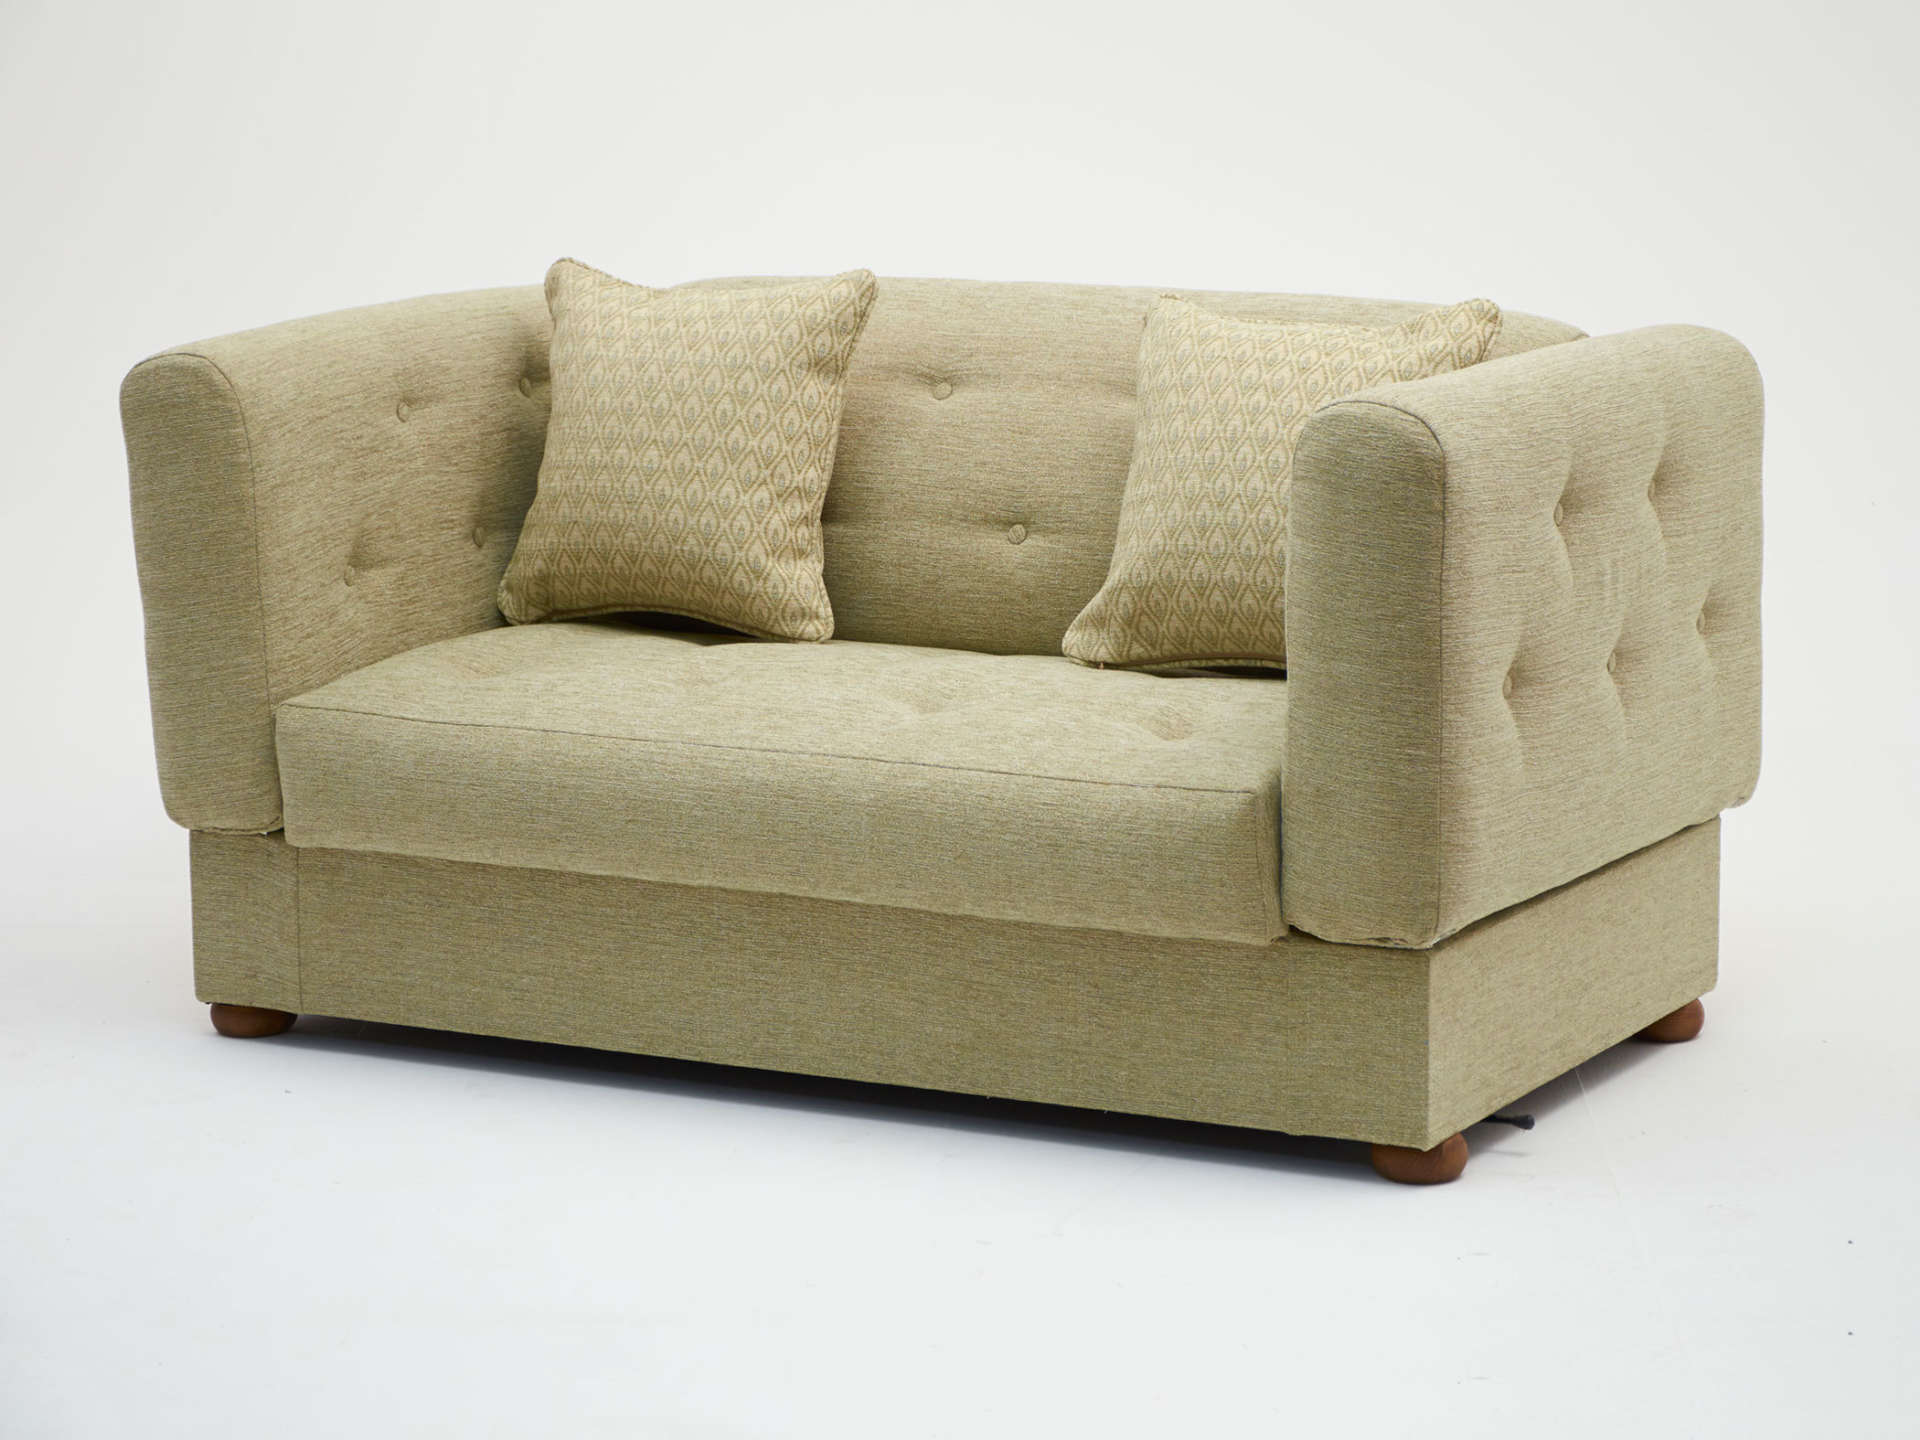 Astonishing Drop Arm Sofa Asnew Upholstery Download Free Architecture Designs Scobabritishbridgeorg